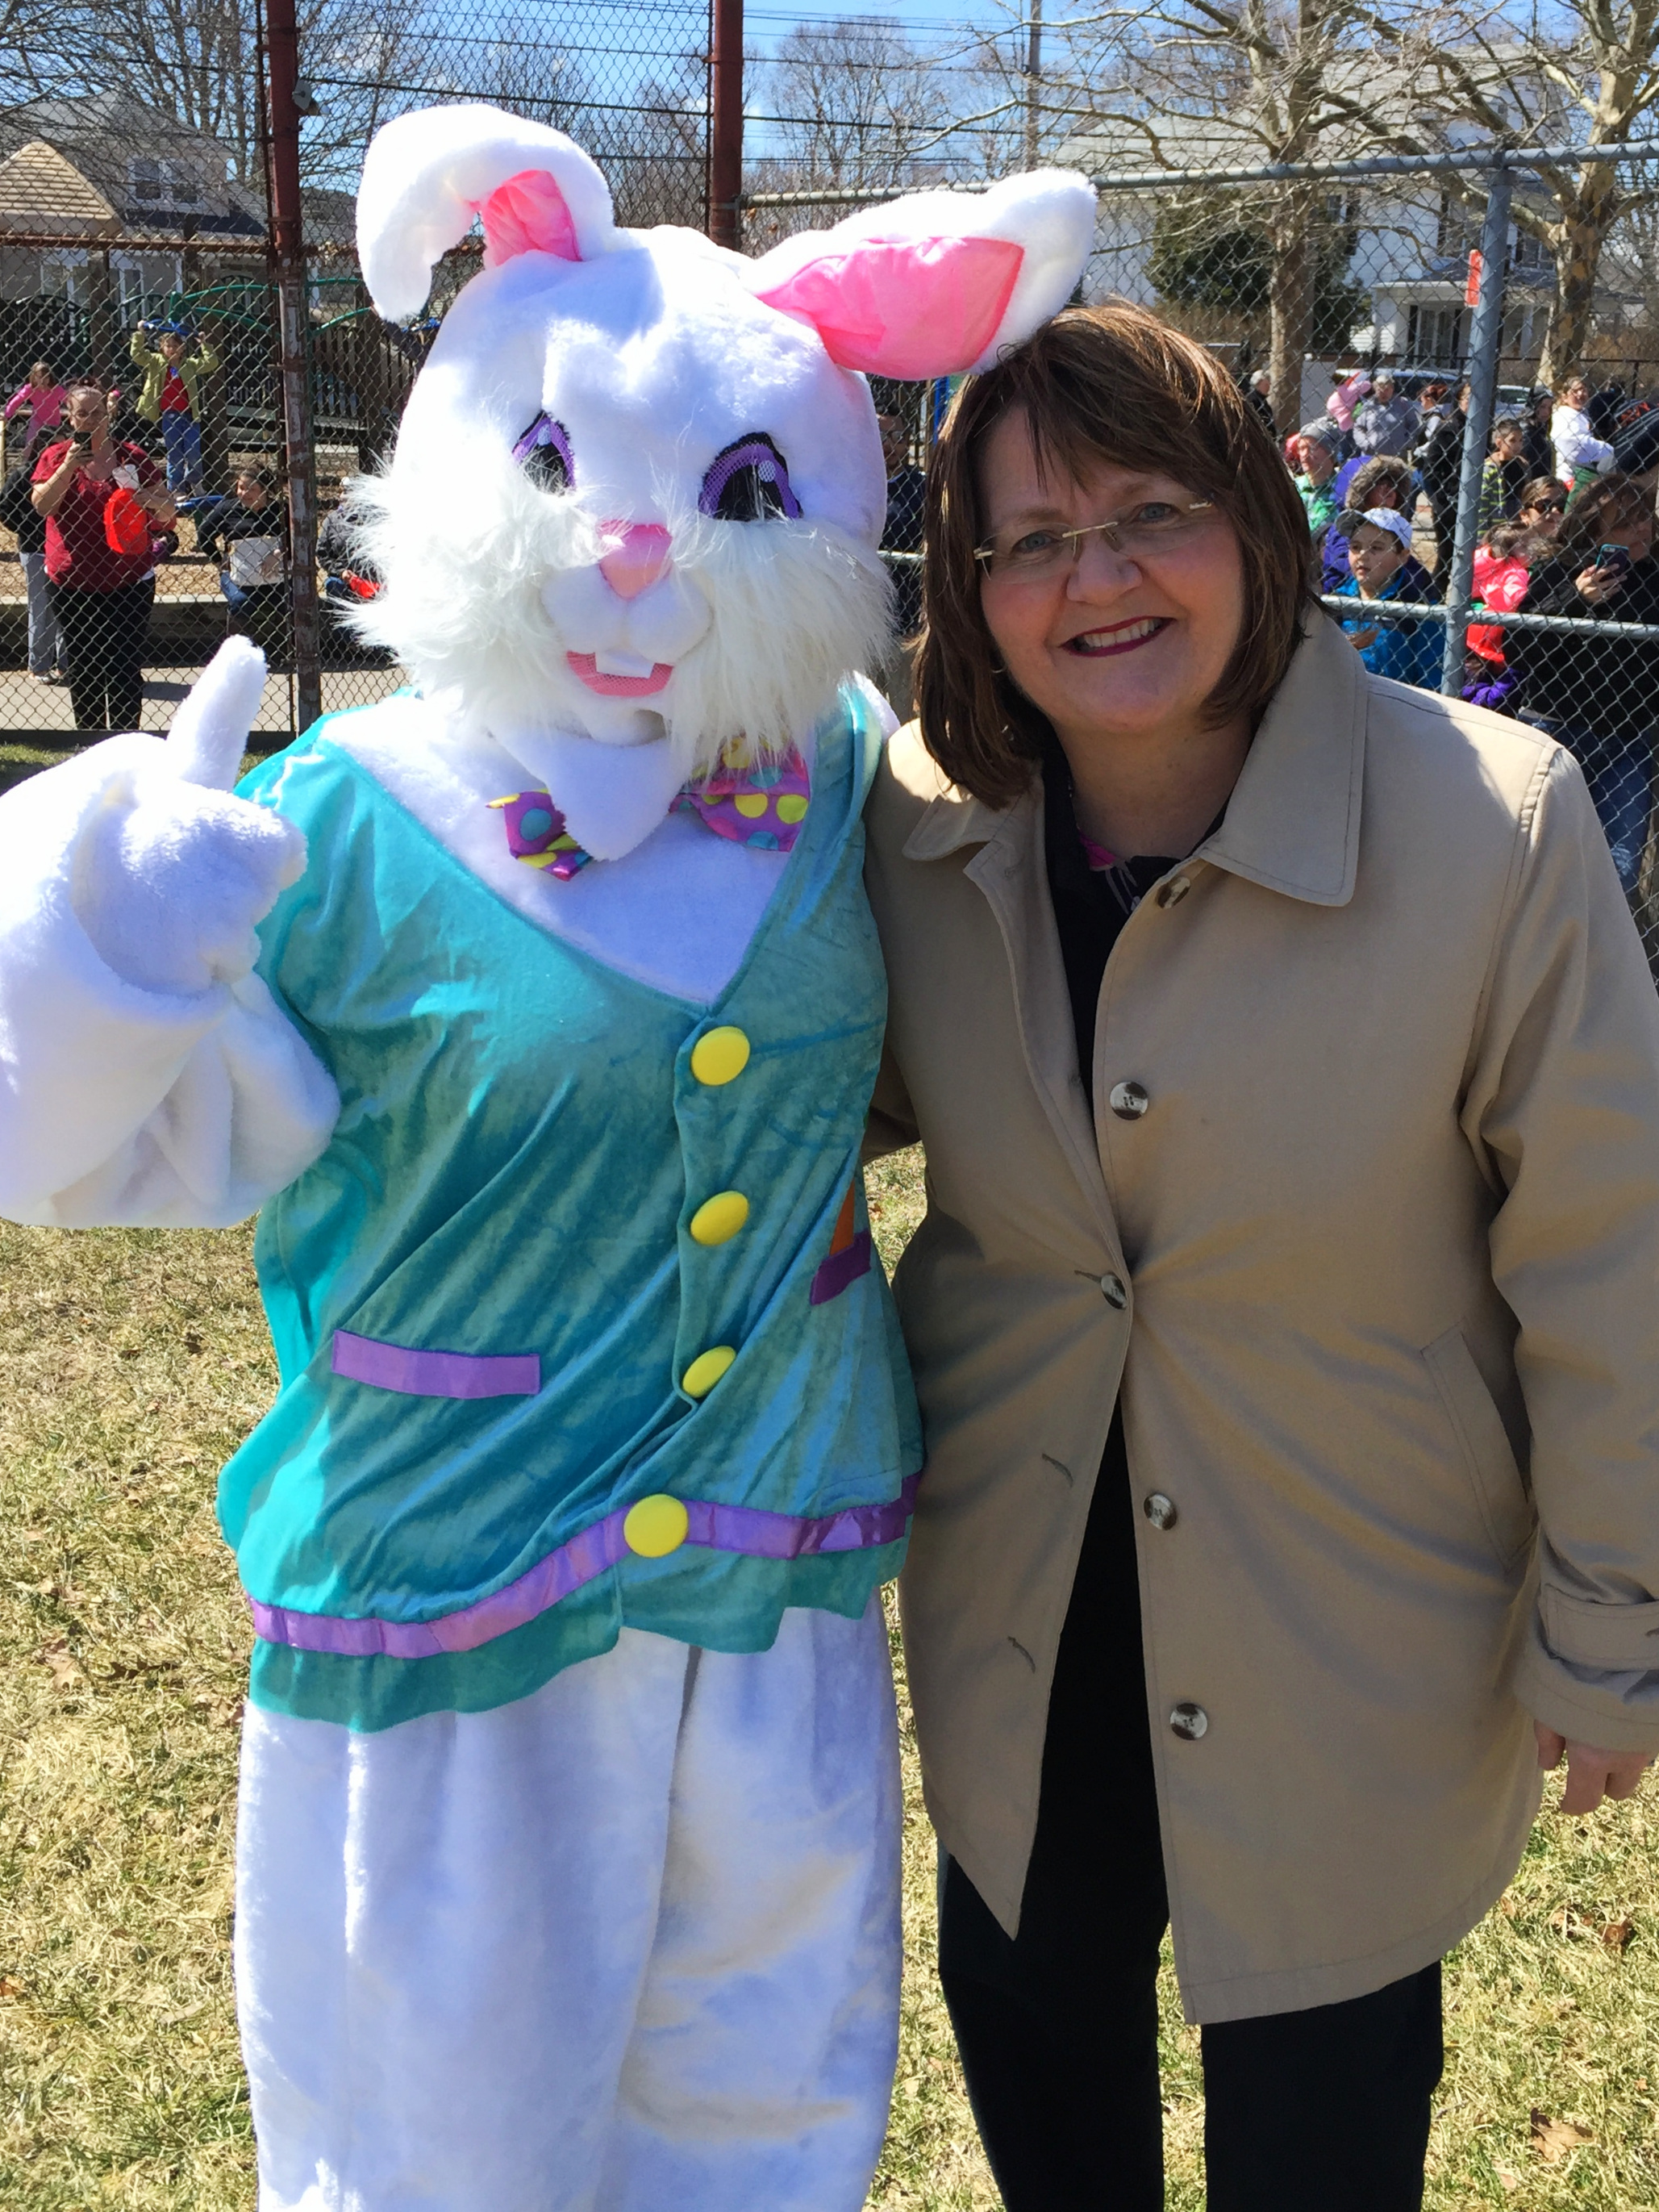 Councilwoman Ryan and a special guest at last years Easter egg hunt